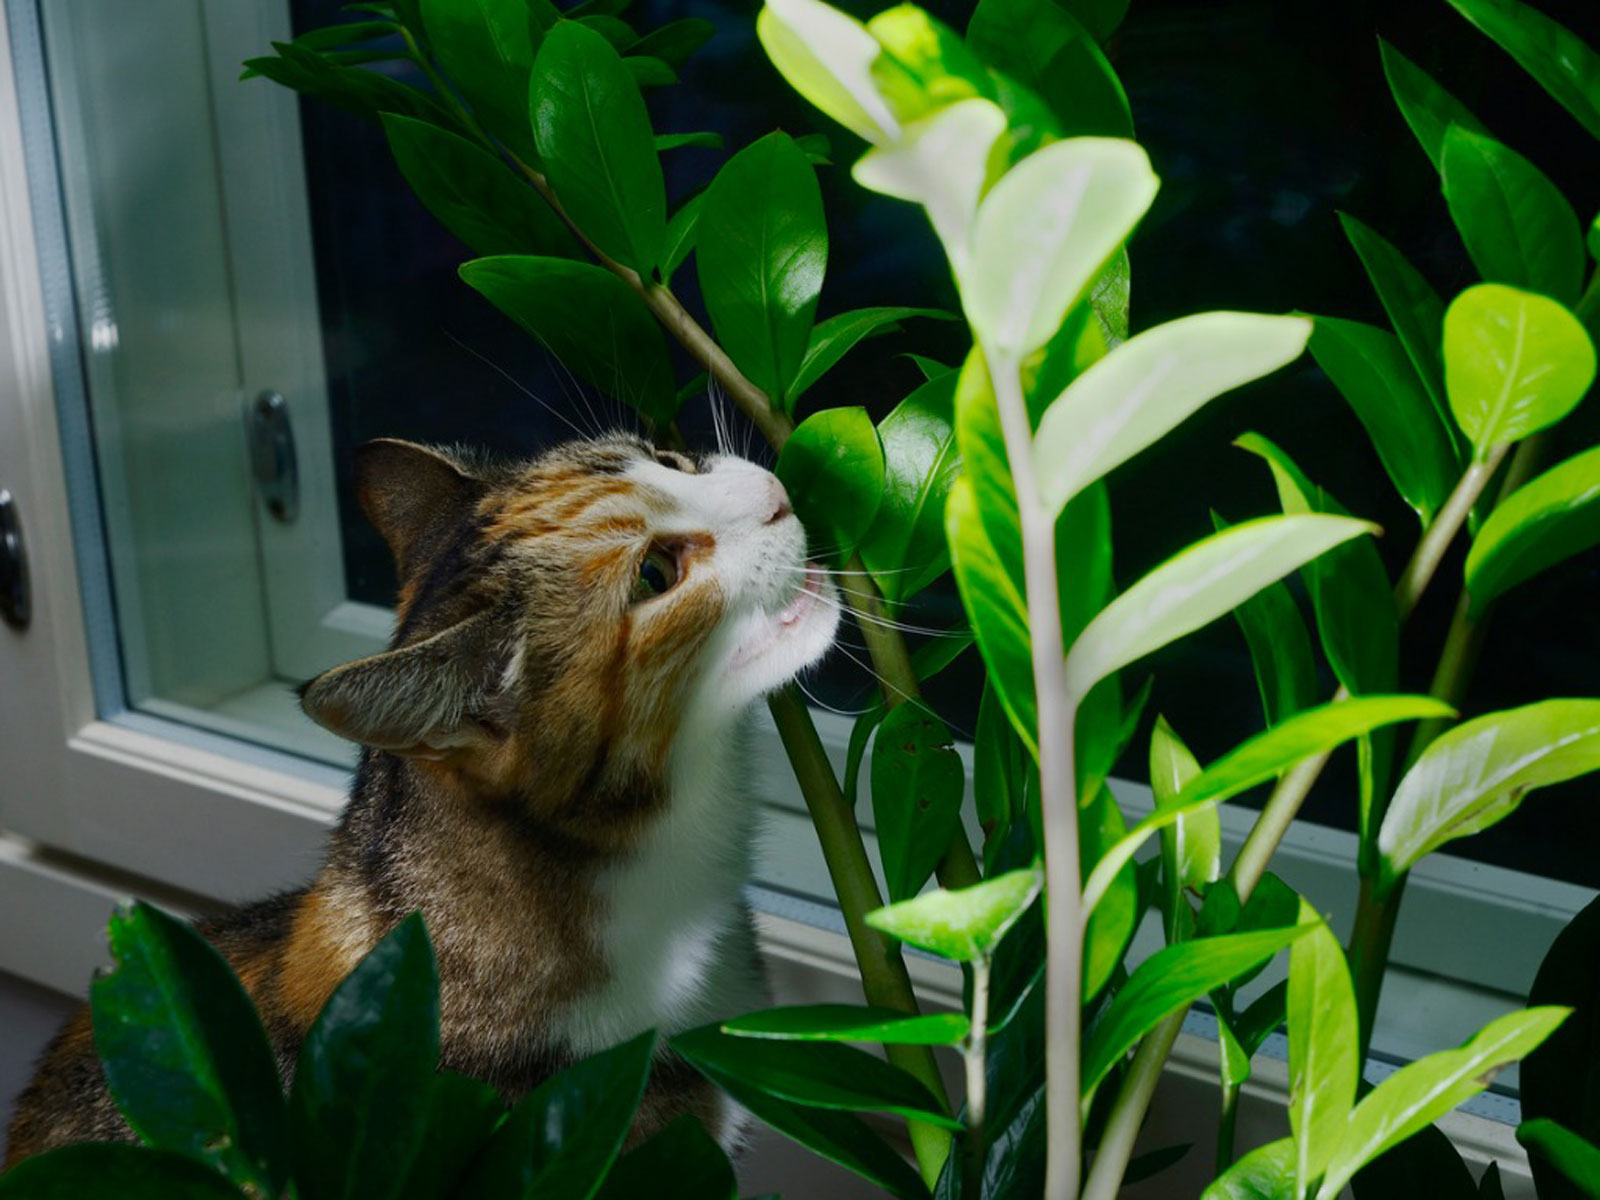 Safeguarding Plants From Cats How To Keep Cats Out Of Houseplants